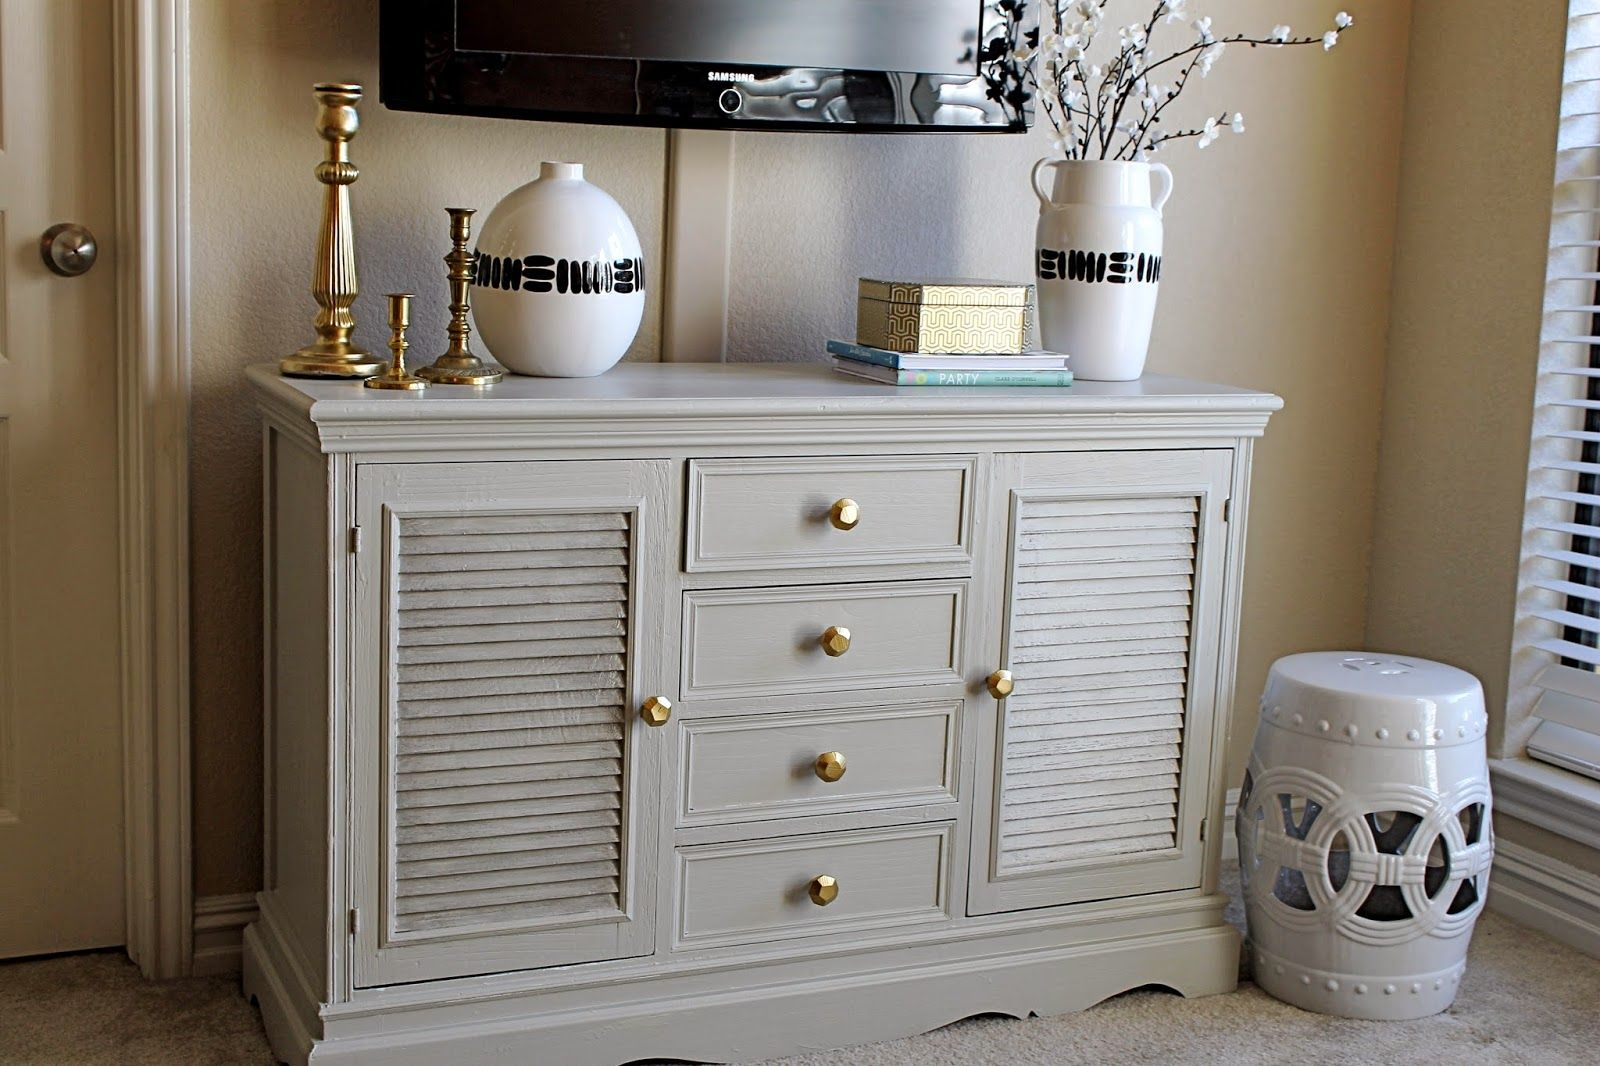 Honey haven entertainment center makeover grey painted